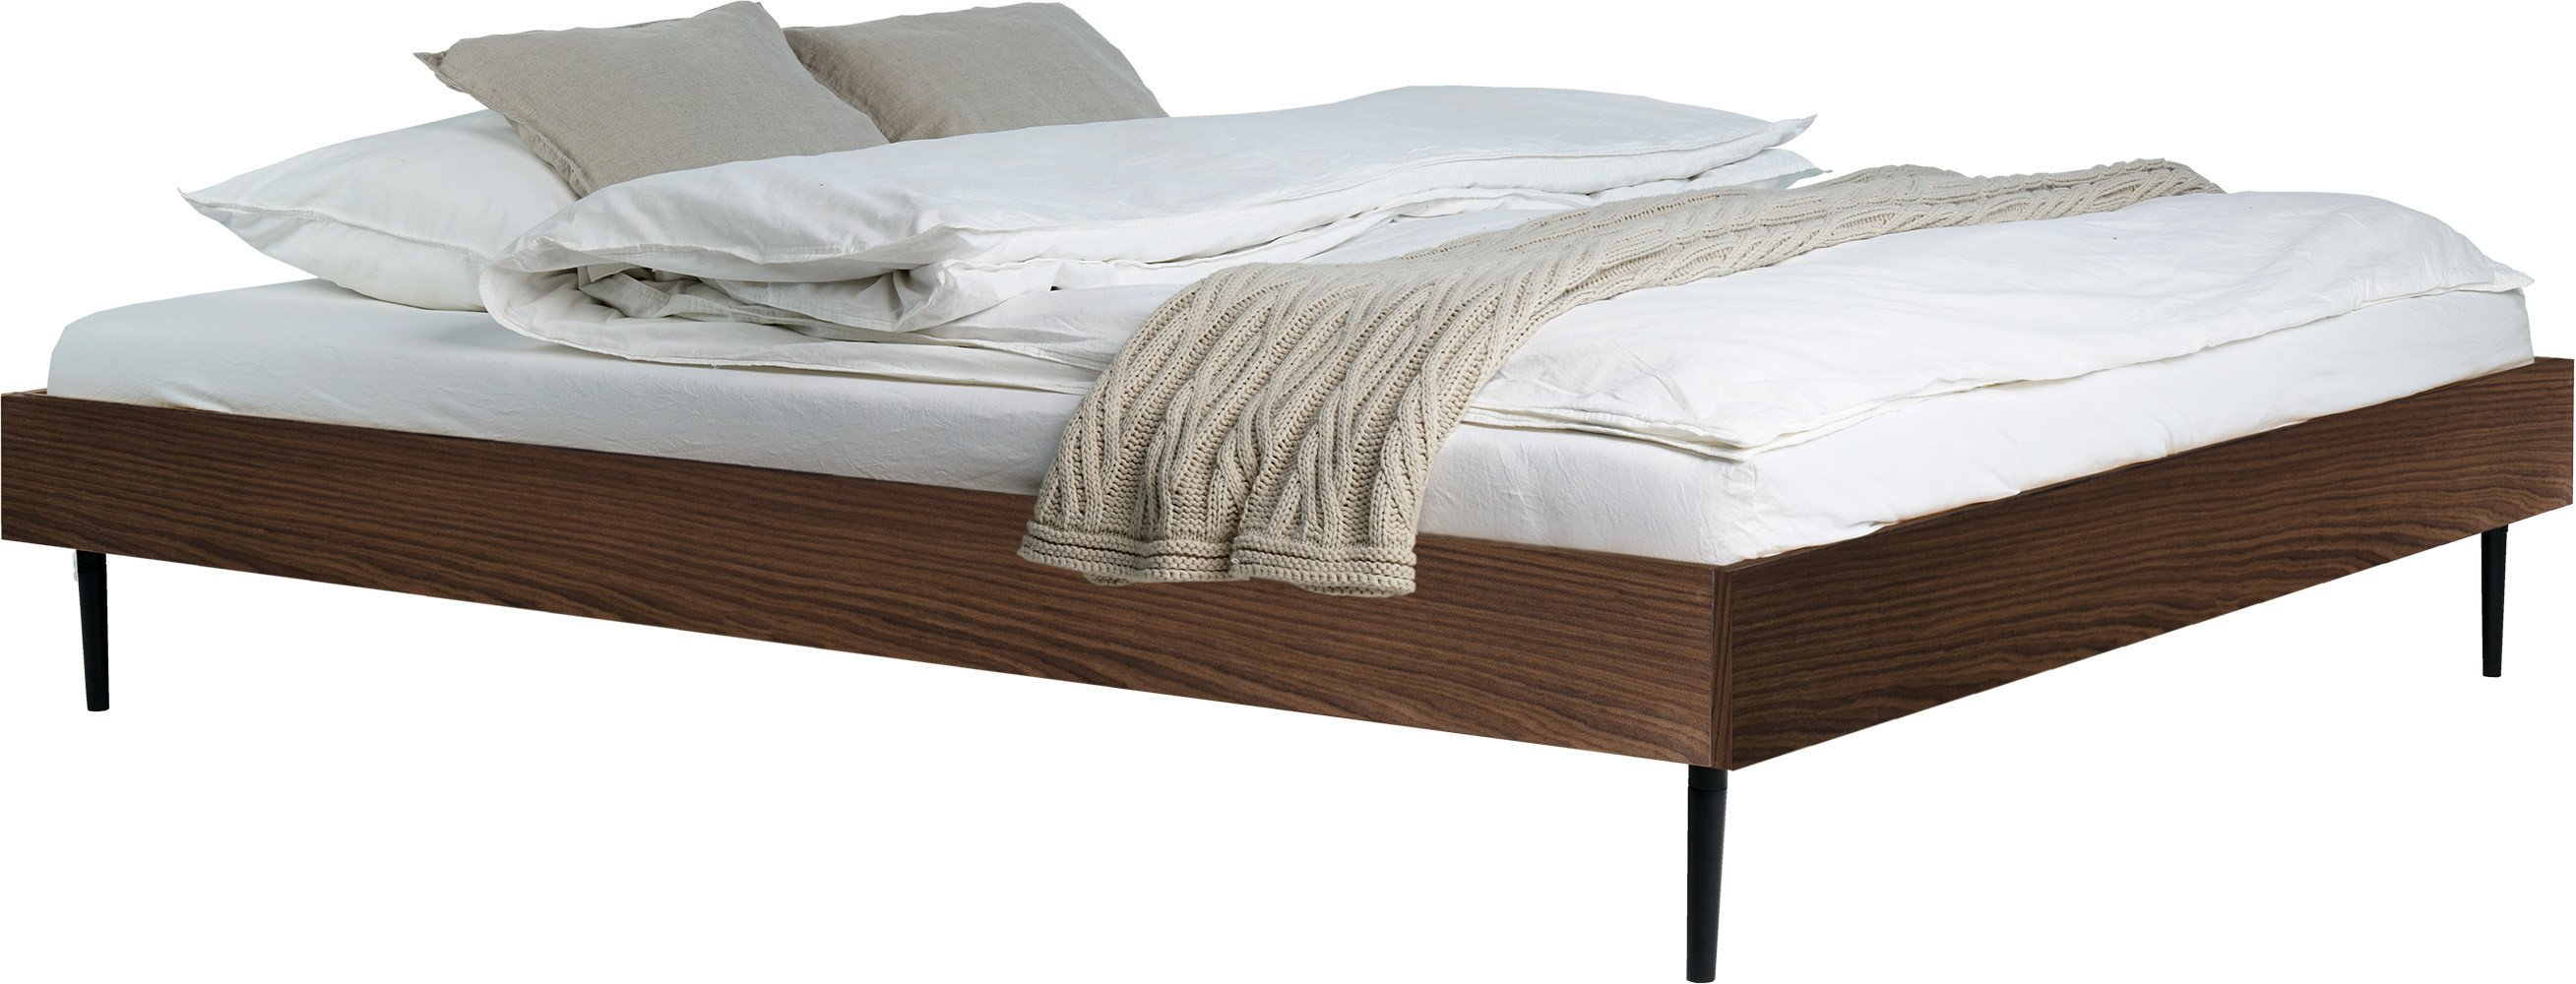 Streiko Bed 160x200 Walnut, noo.ma